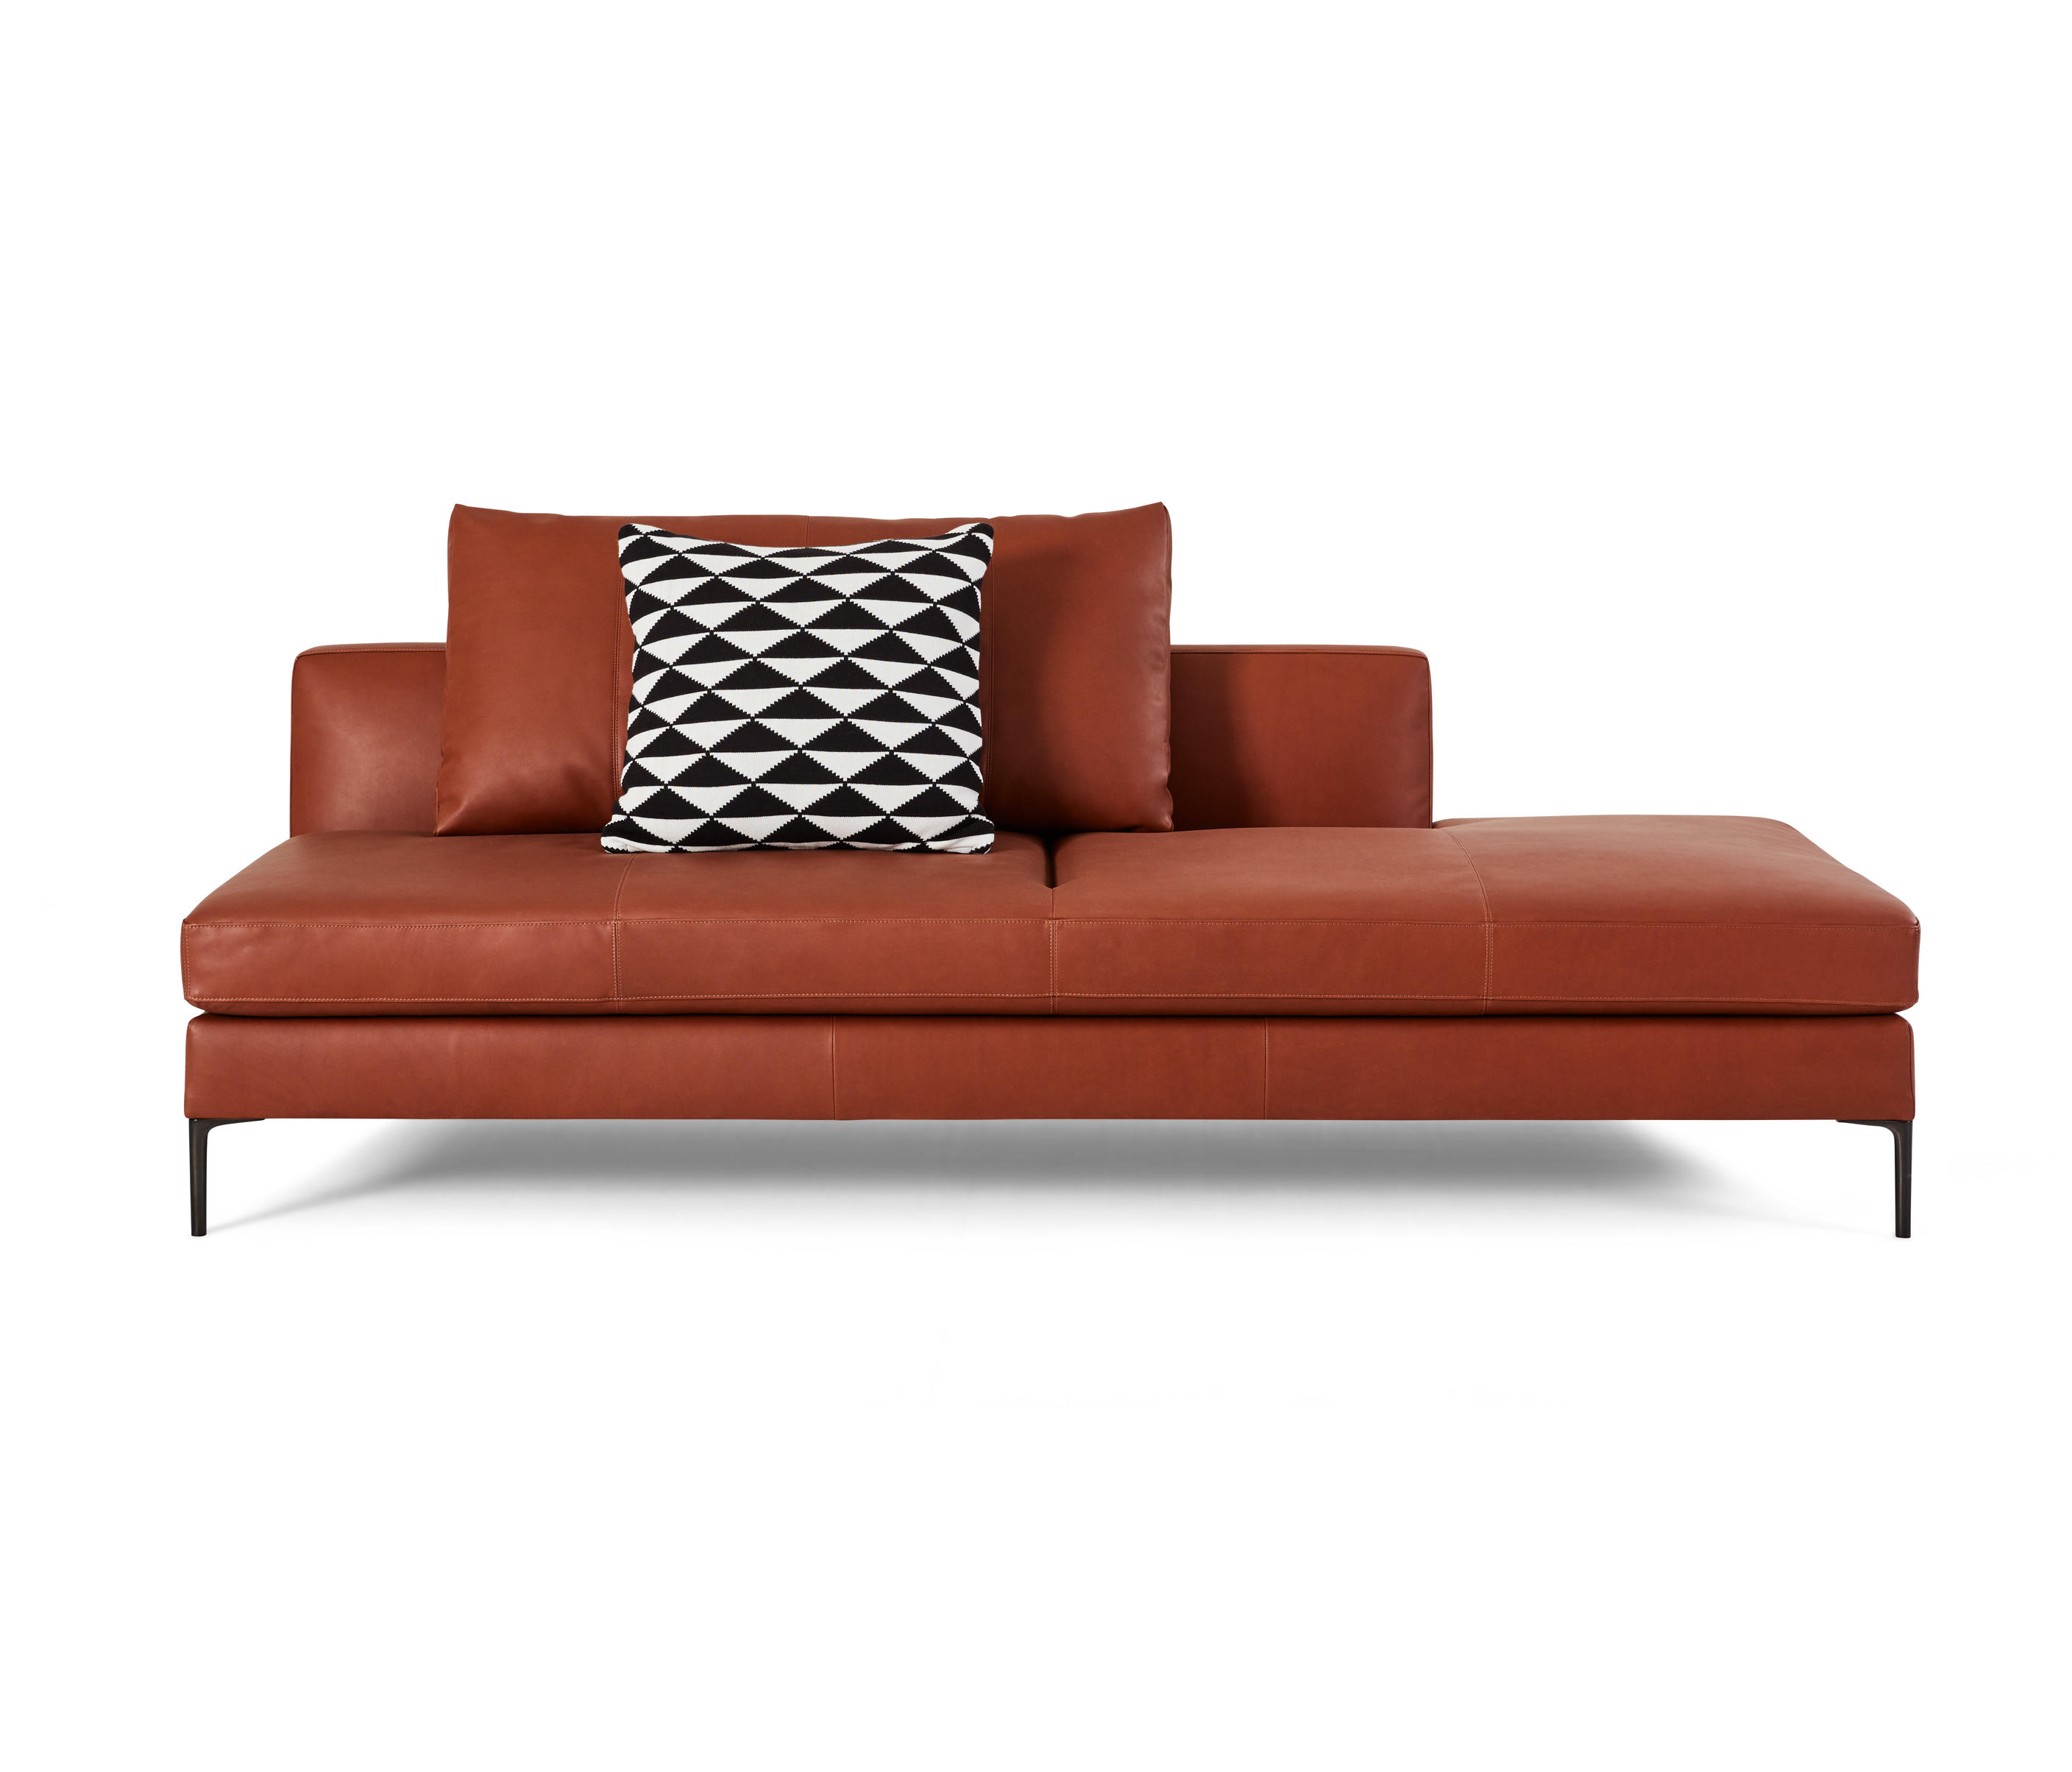 Daley By Montis Sofas